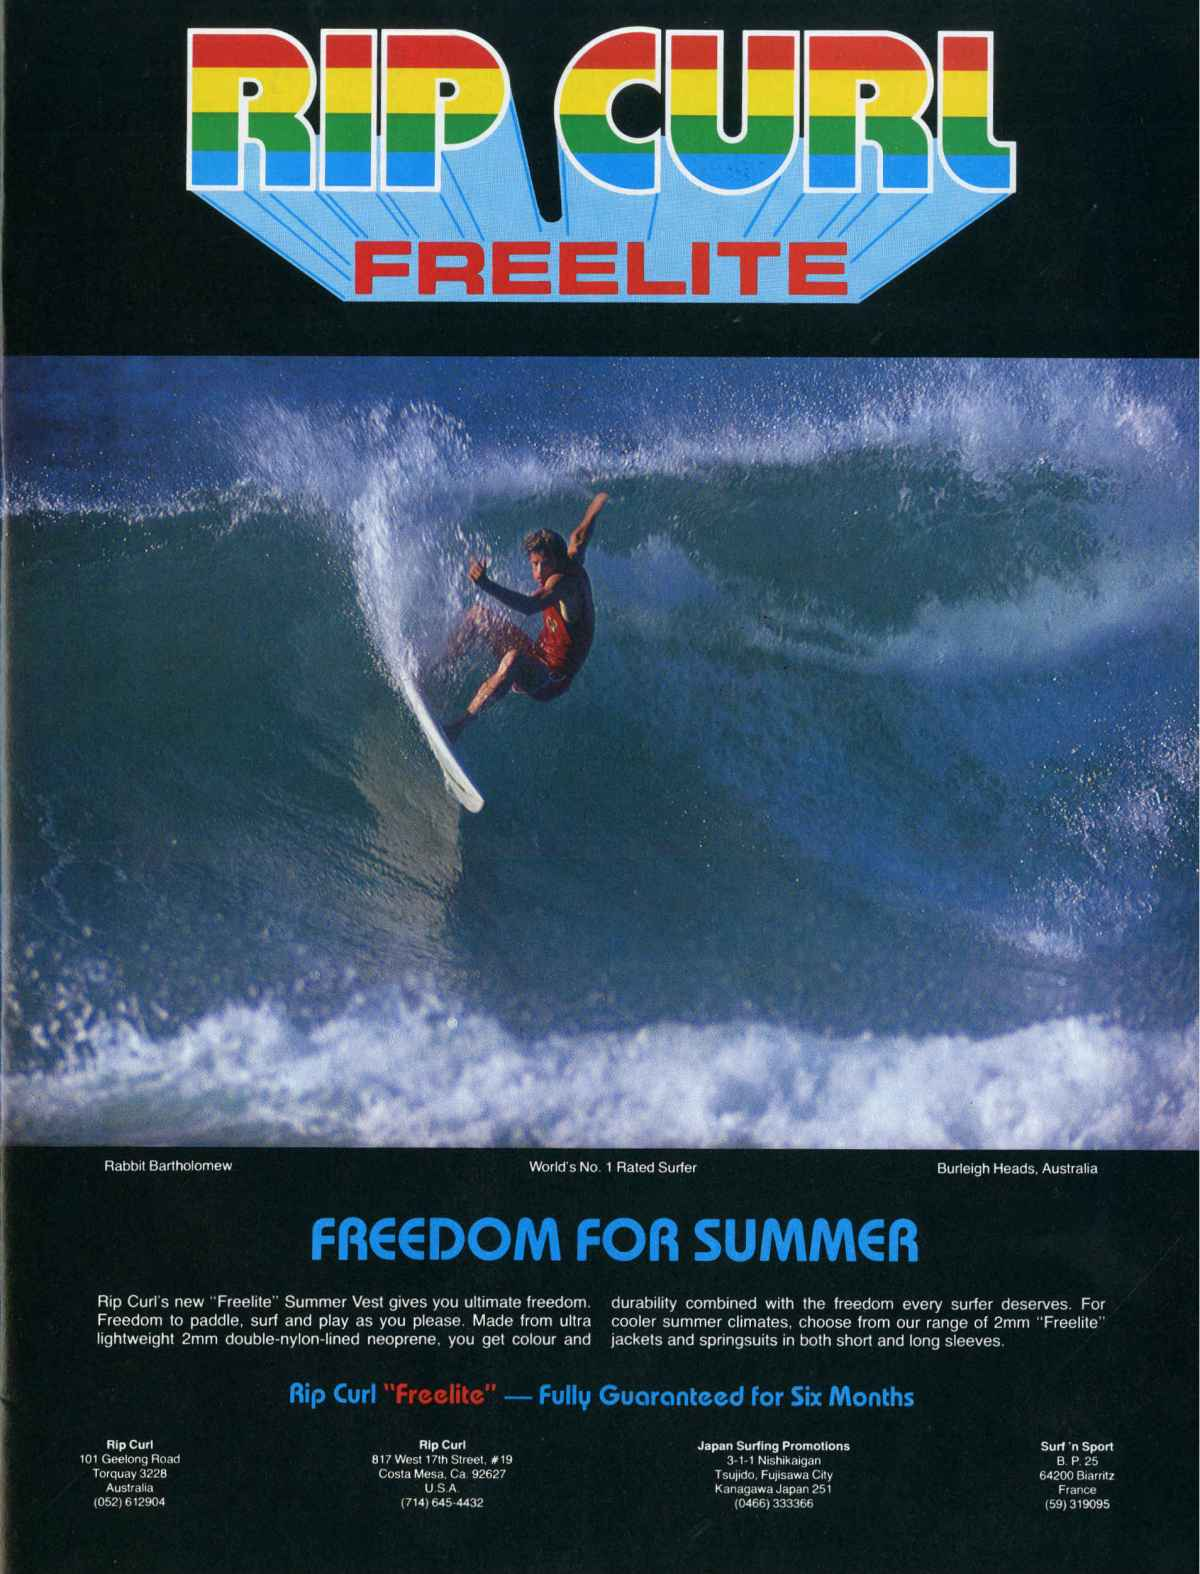 Rip Curl Freelite Ad Featuring Rabbit Bartholomew: Sagas of Shred